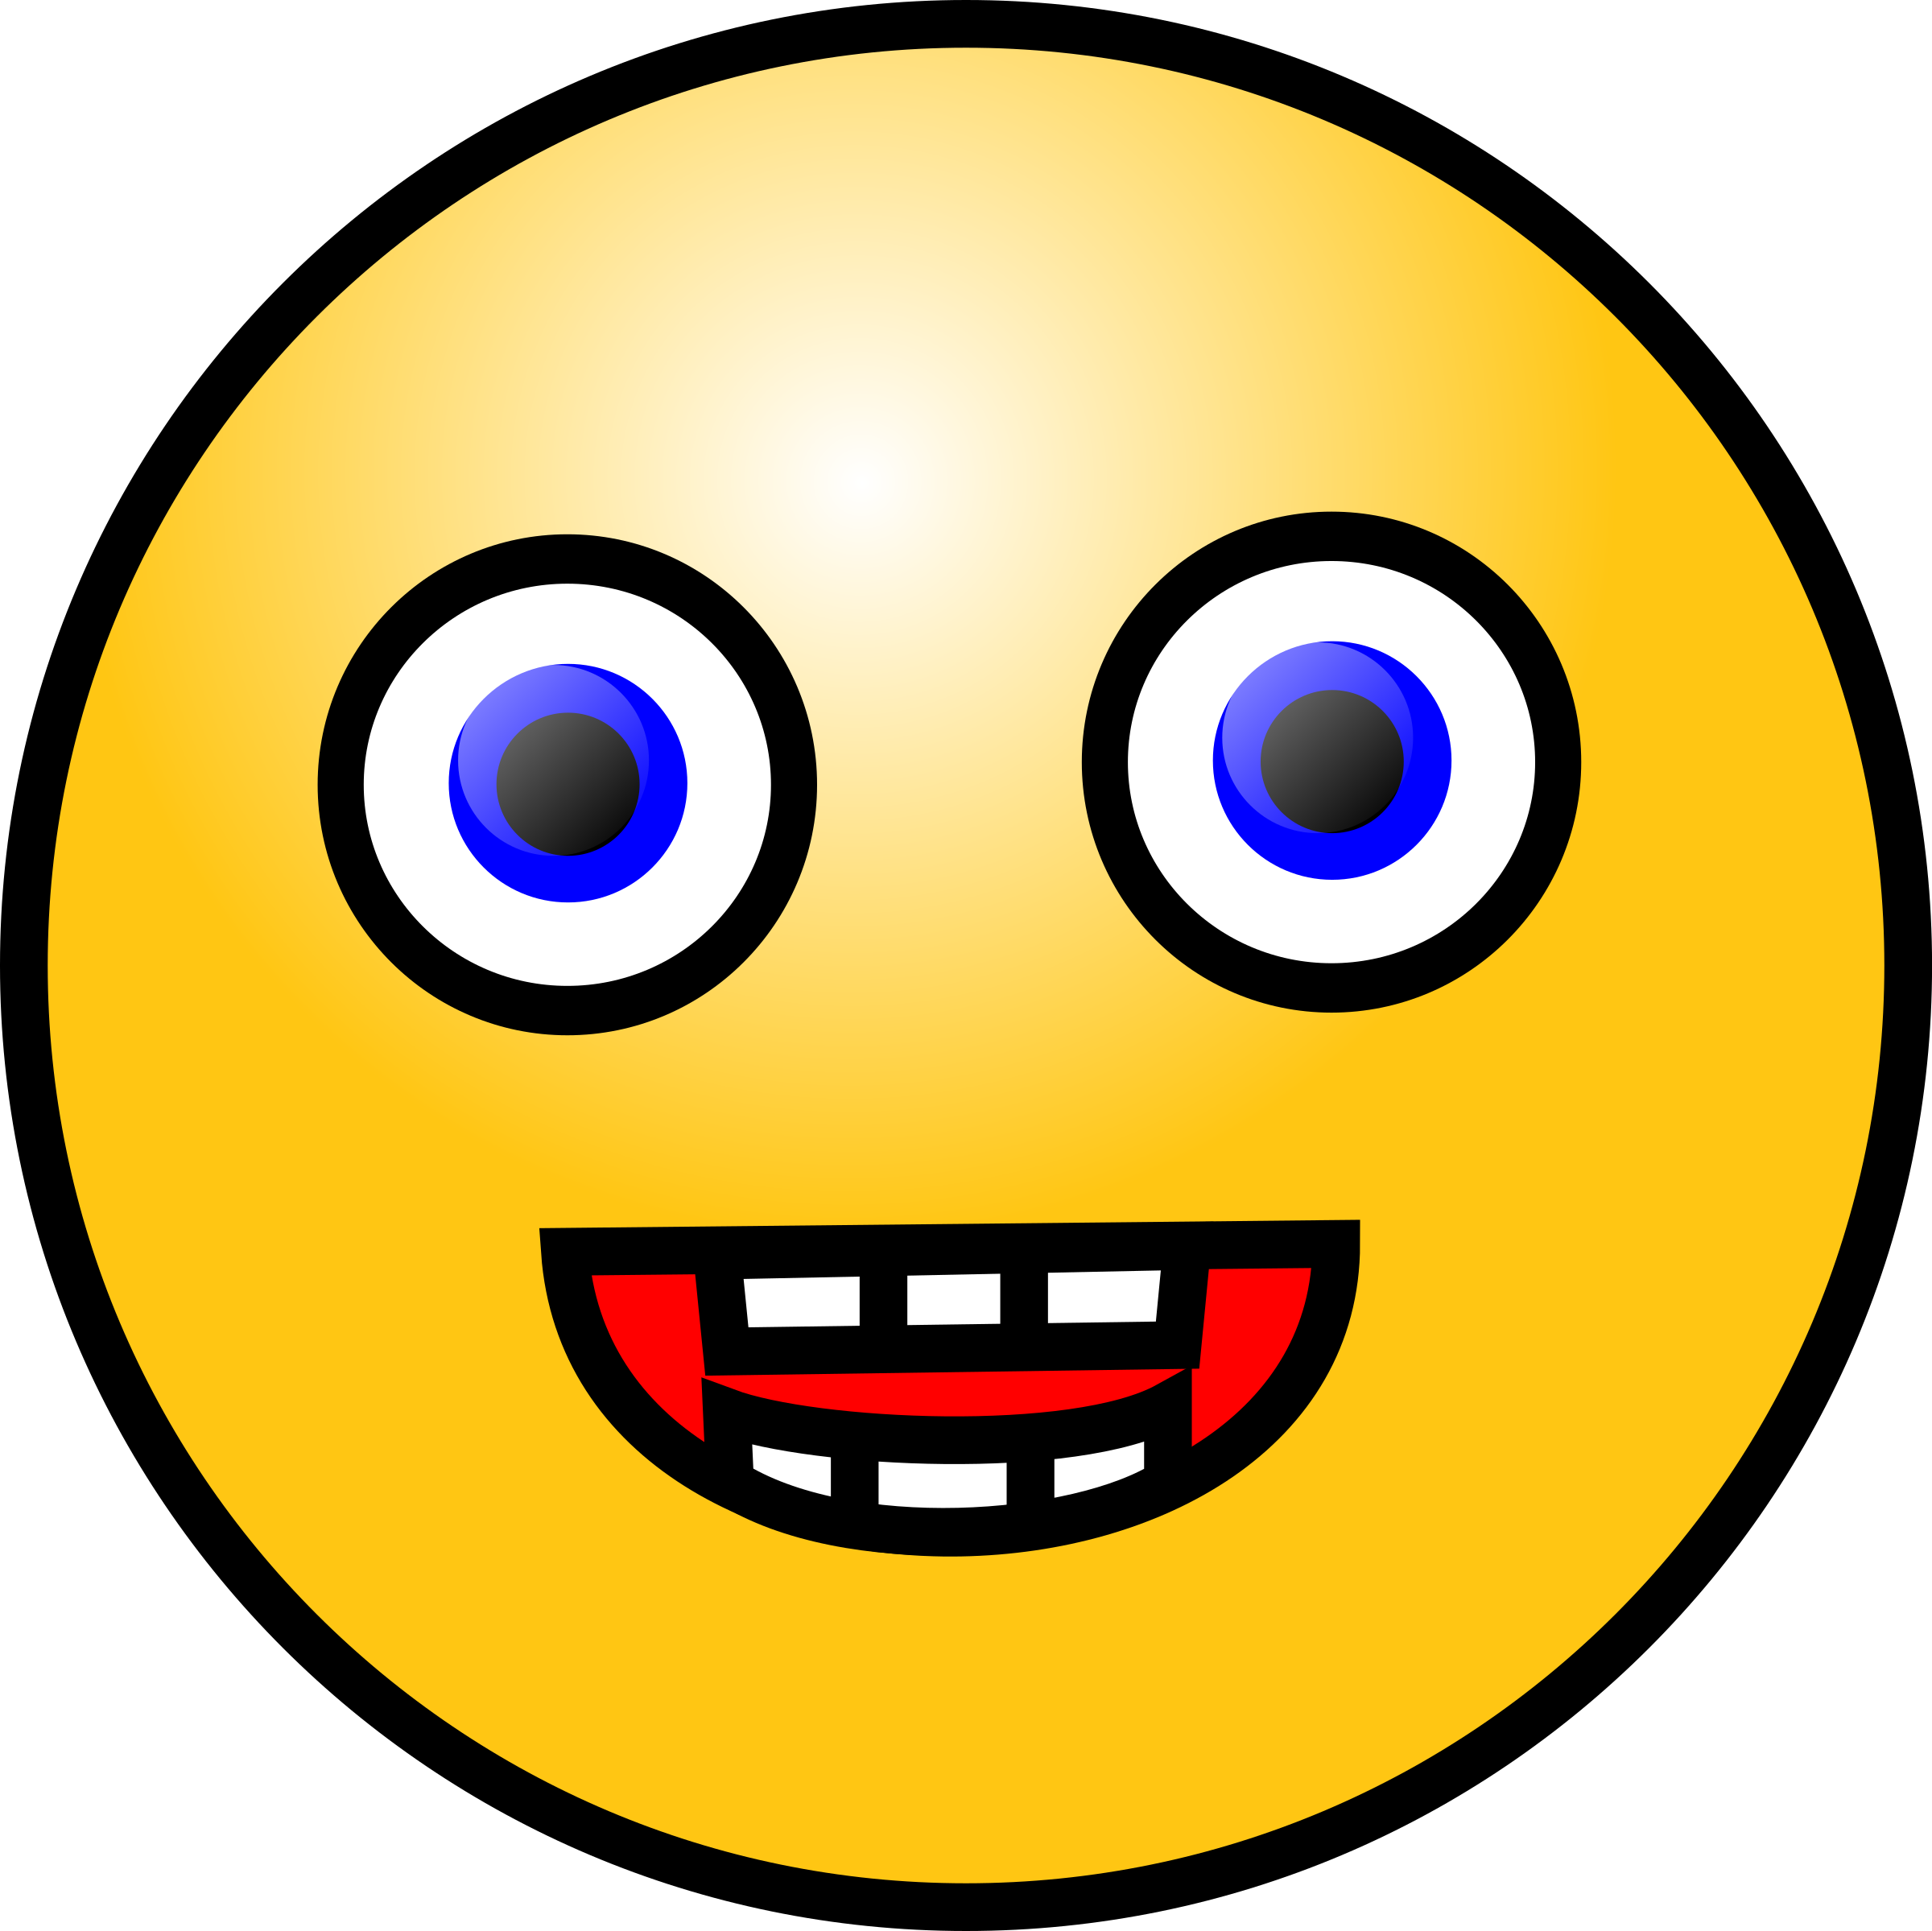 Emoticons: Laughing face by nicubunu